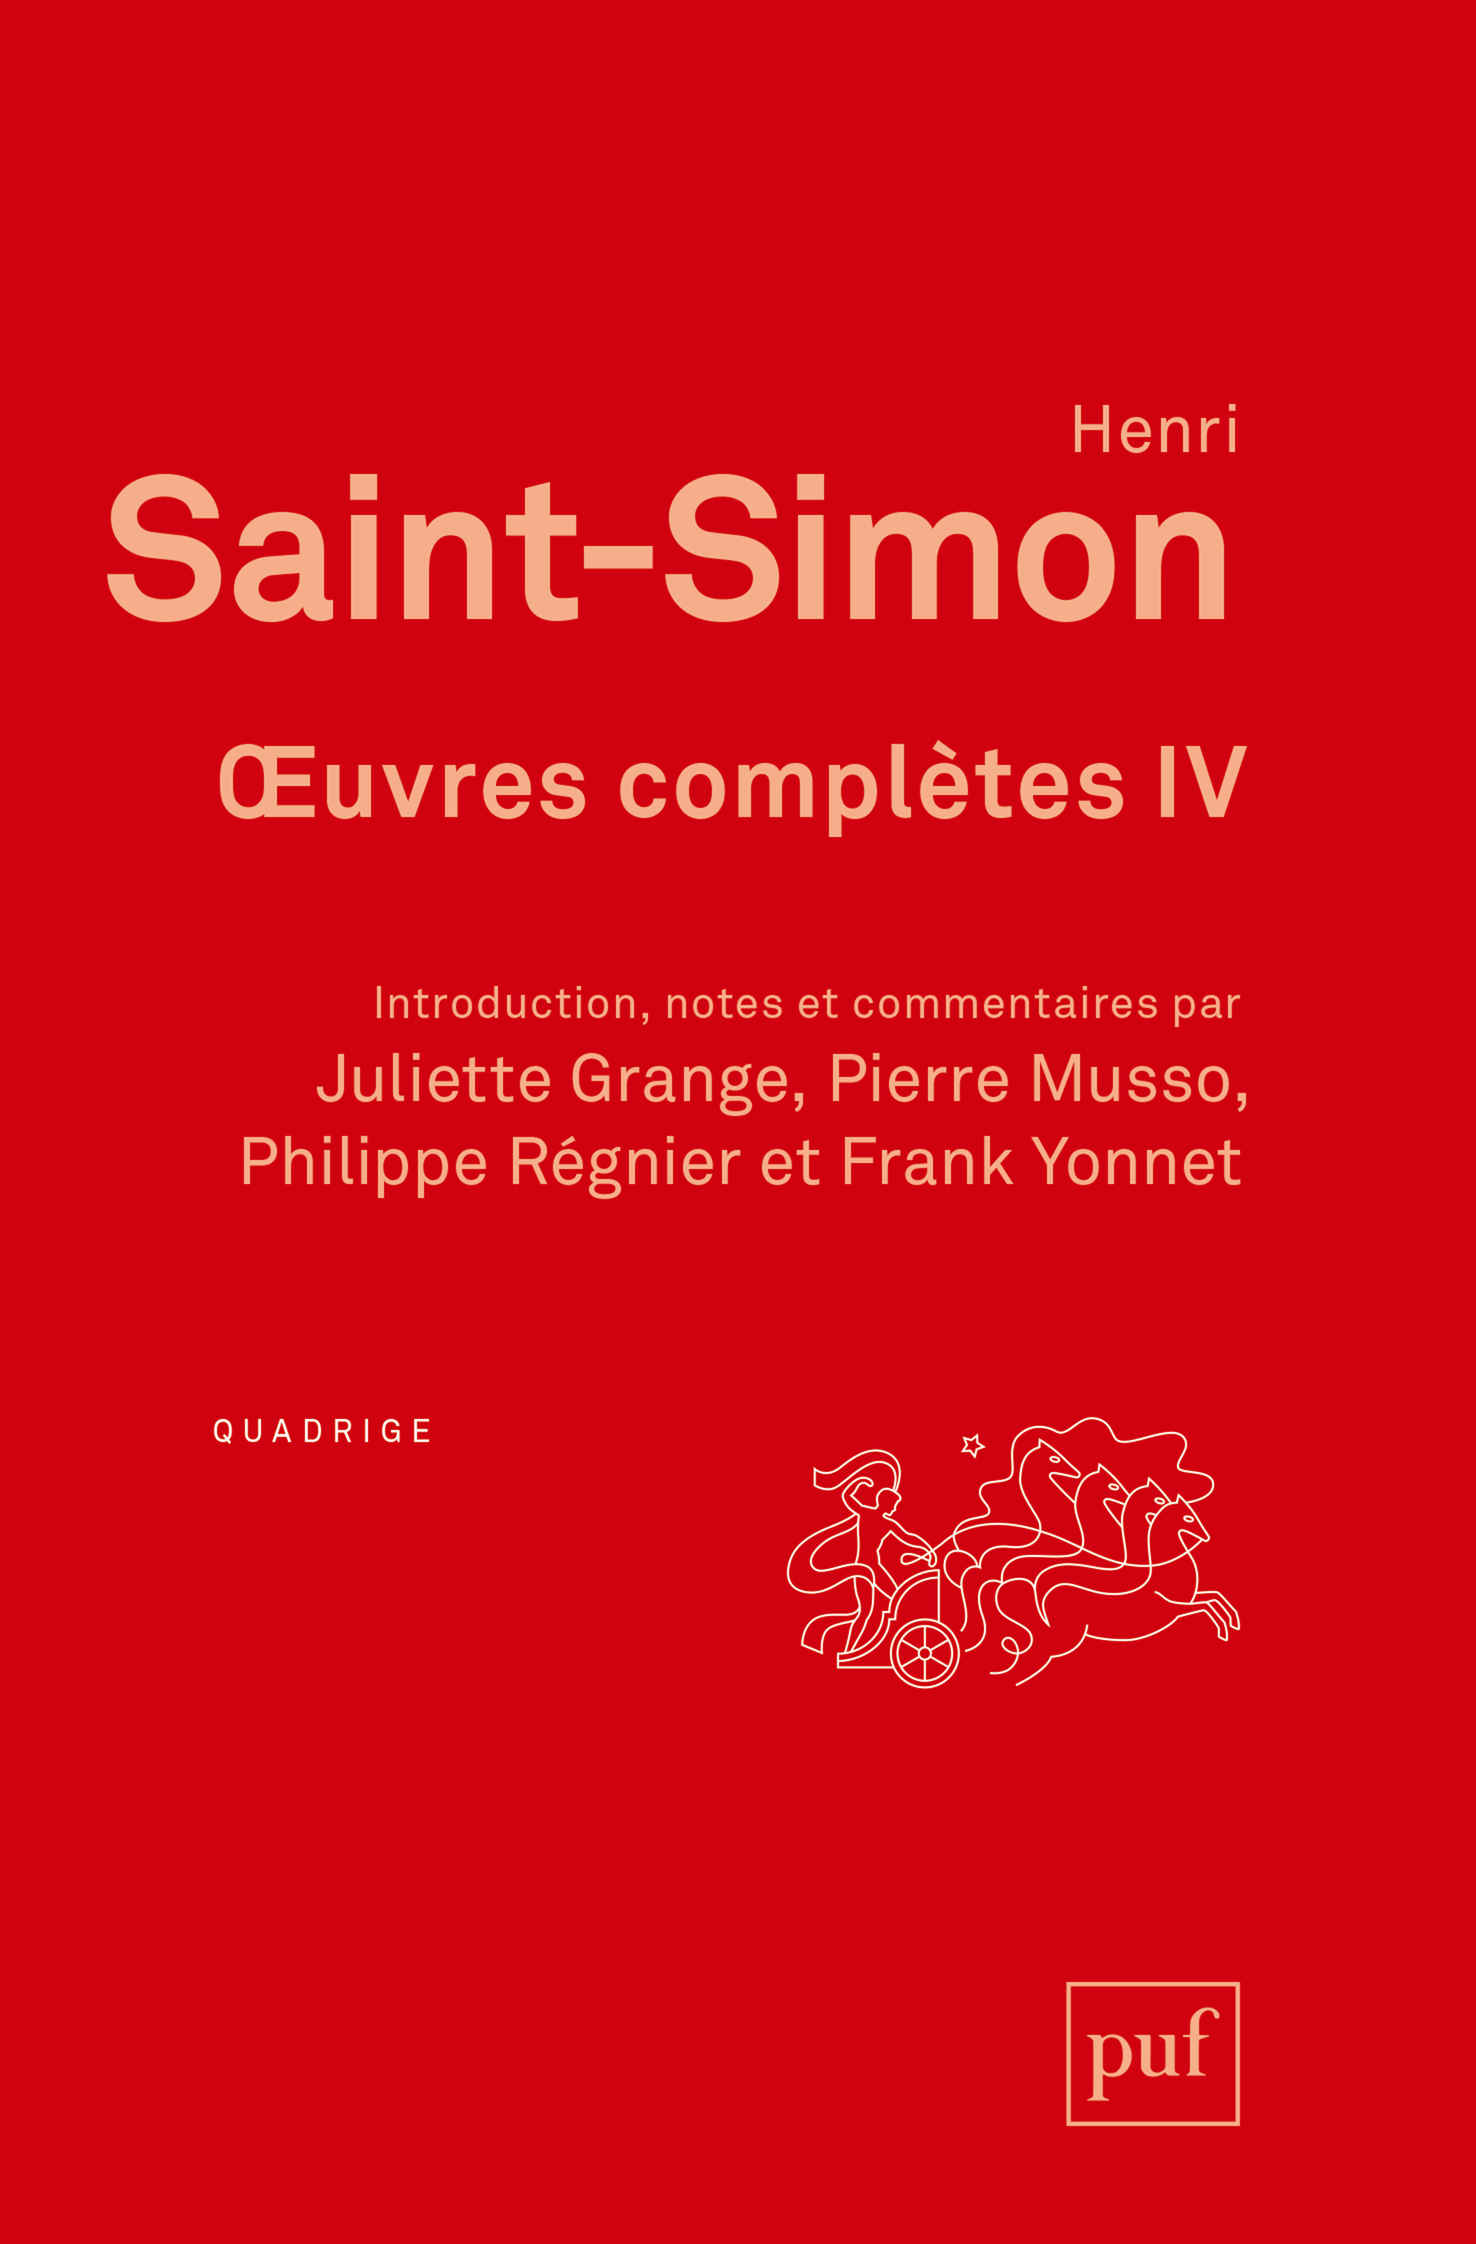 OEUVRES COMPLETES (4 VOLUMES) - INTRODUCTION, NOTES ET COMMENTAIRES SOUS LA DIRECTION DE PIERRE MUSS